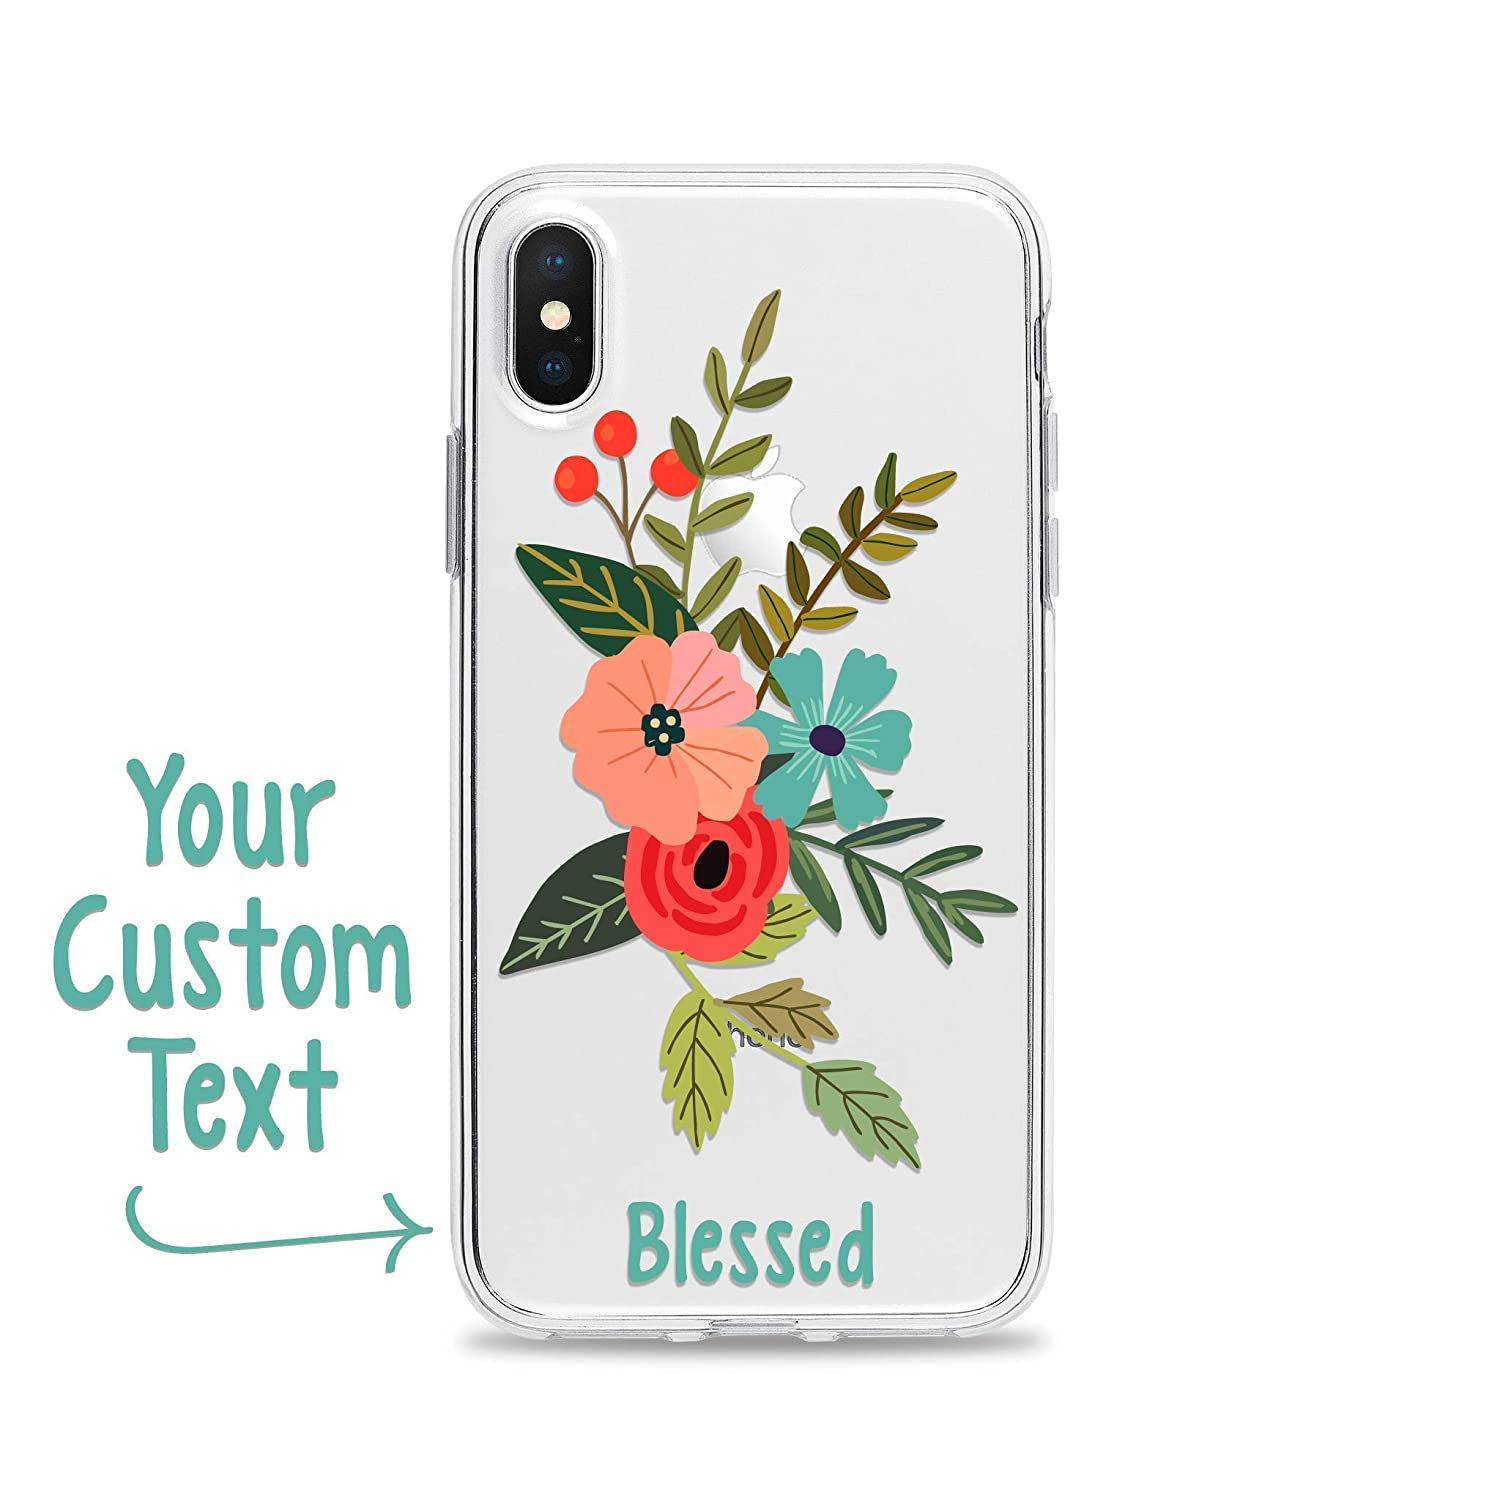 Blessed Phone Case Floral for Apple iPhone XS Max XR X 10S 10R 10 8 7 6s 6 SE 5s 5 Clear Transparent Soft Gel Rubber